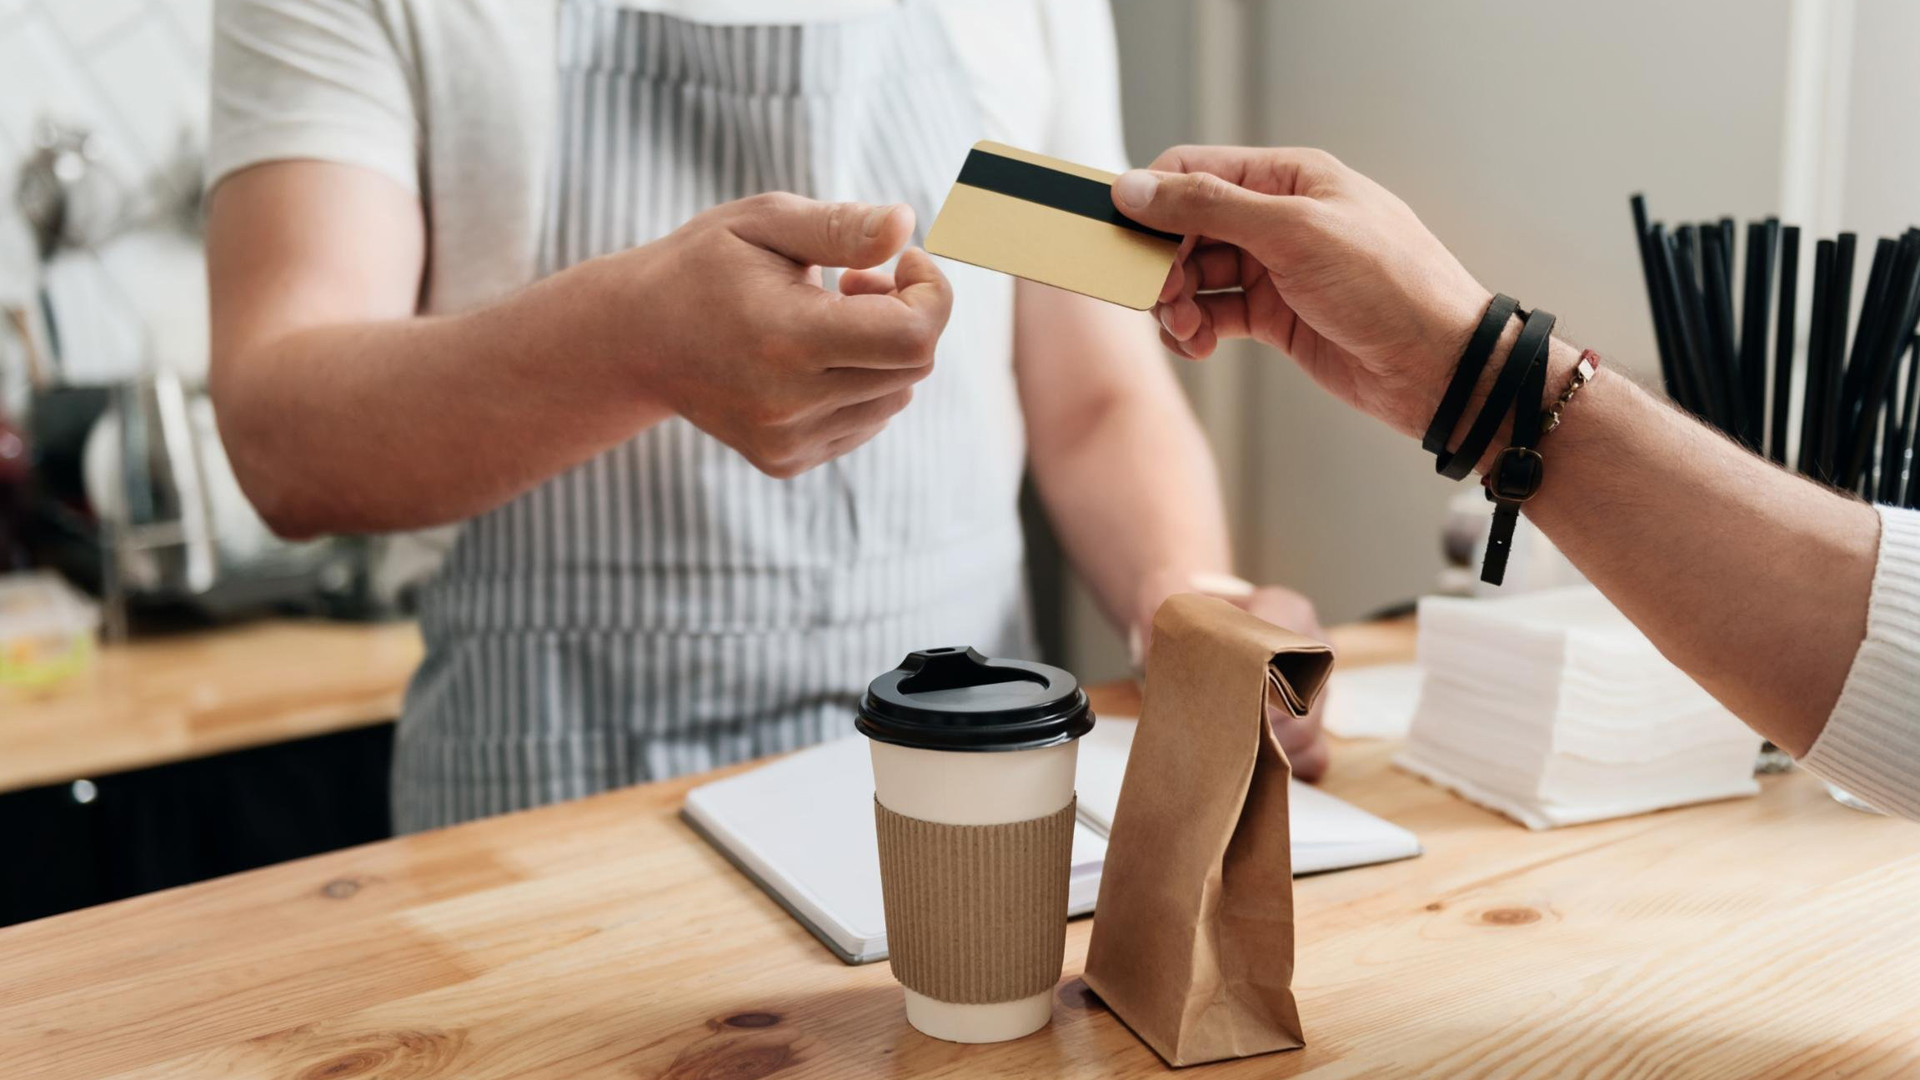 A customer pays at a restaurant in this file photo. (Credit: Shutterstock via CNN Wire)